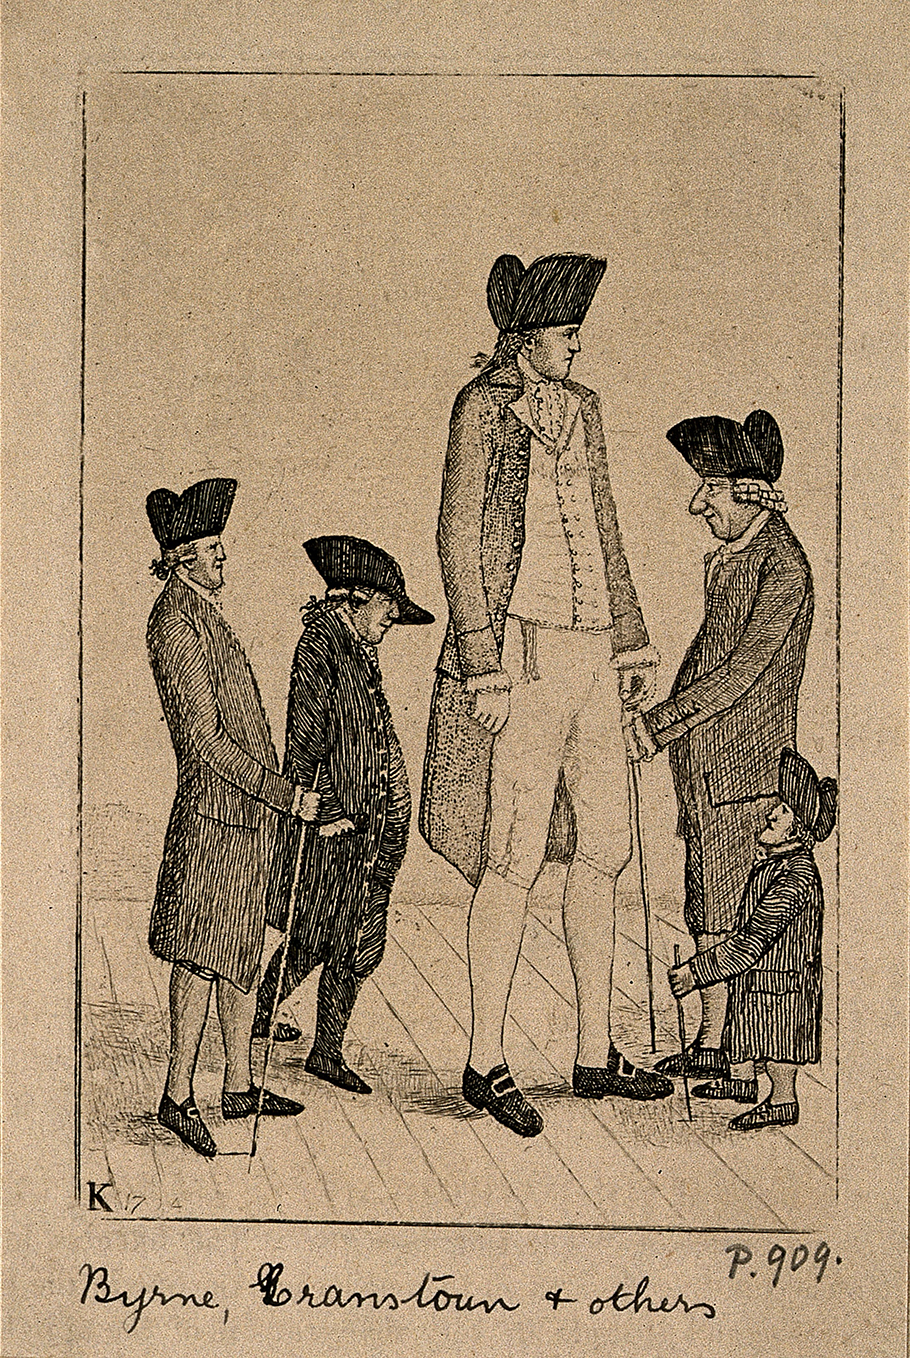 Charles Byrne, the Irish Giant, George Cranstoun, a dwarf, and three other normal sized men. Etching by J. Kay, 1794. This file comes from Wellcome Images, a website operated by Wellcome Trust, a global charitable foundation based in the United Kingdom.